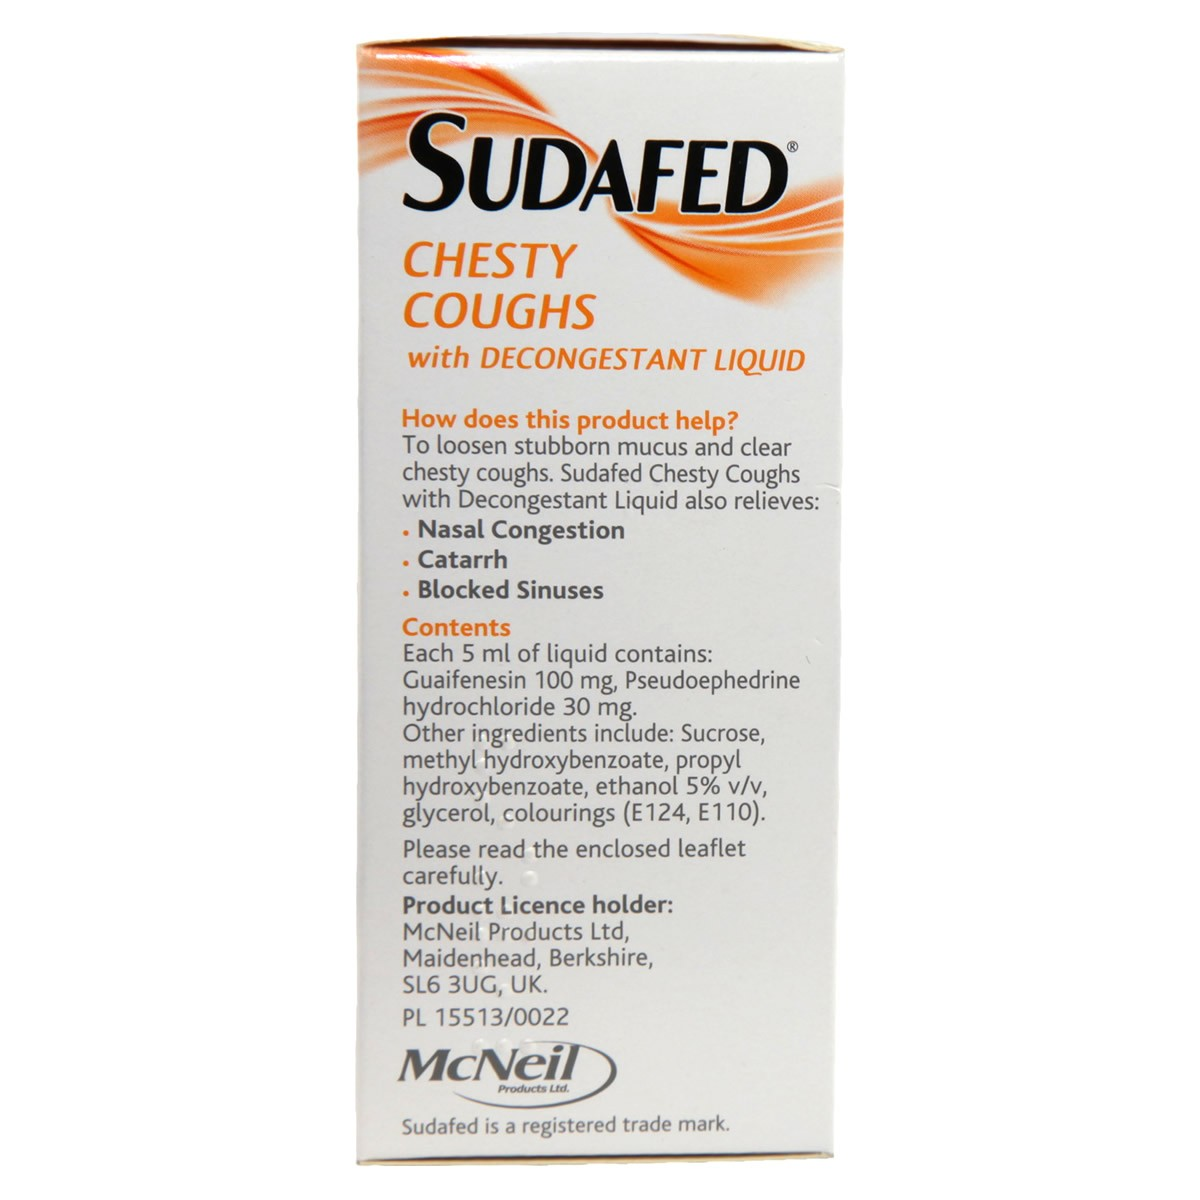 Sudafed Chesty Cough With Decongestant Liquid